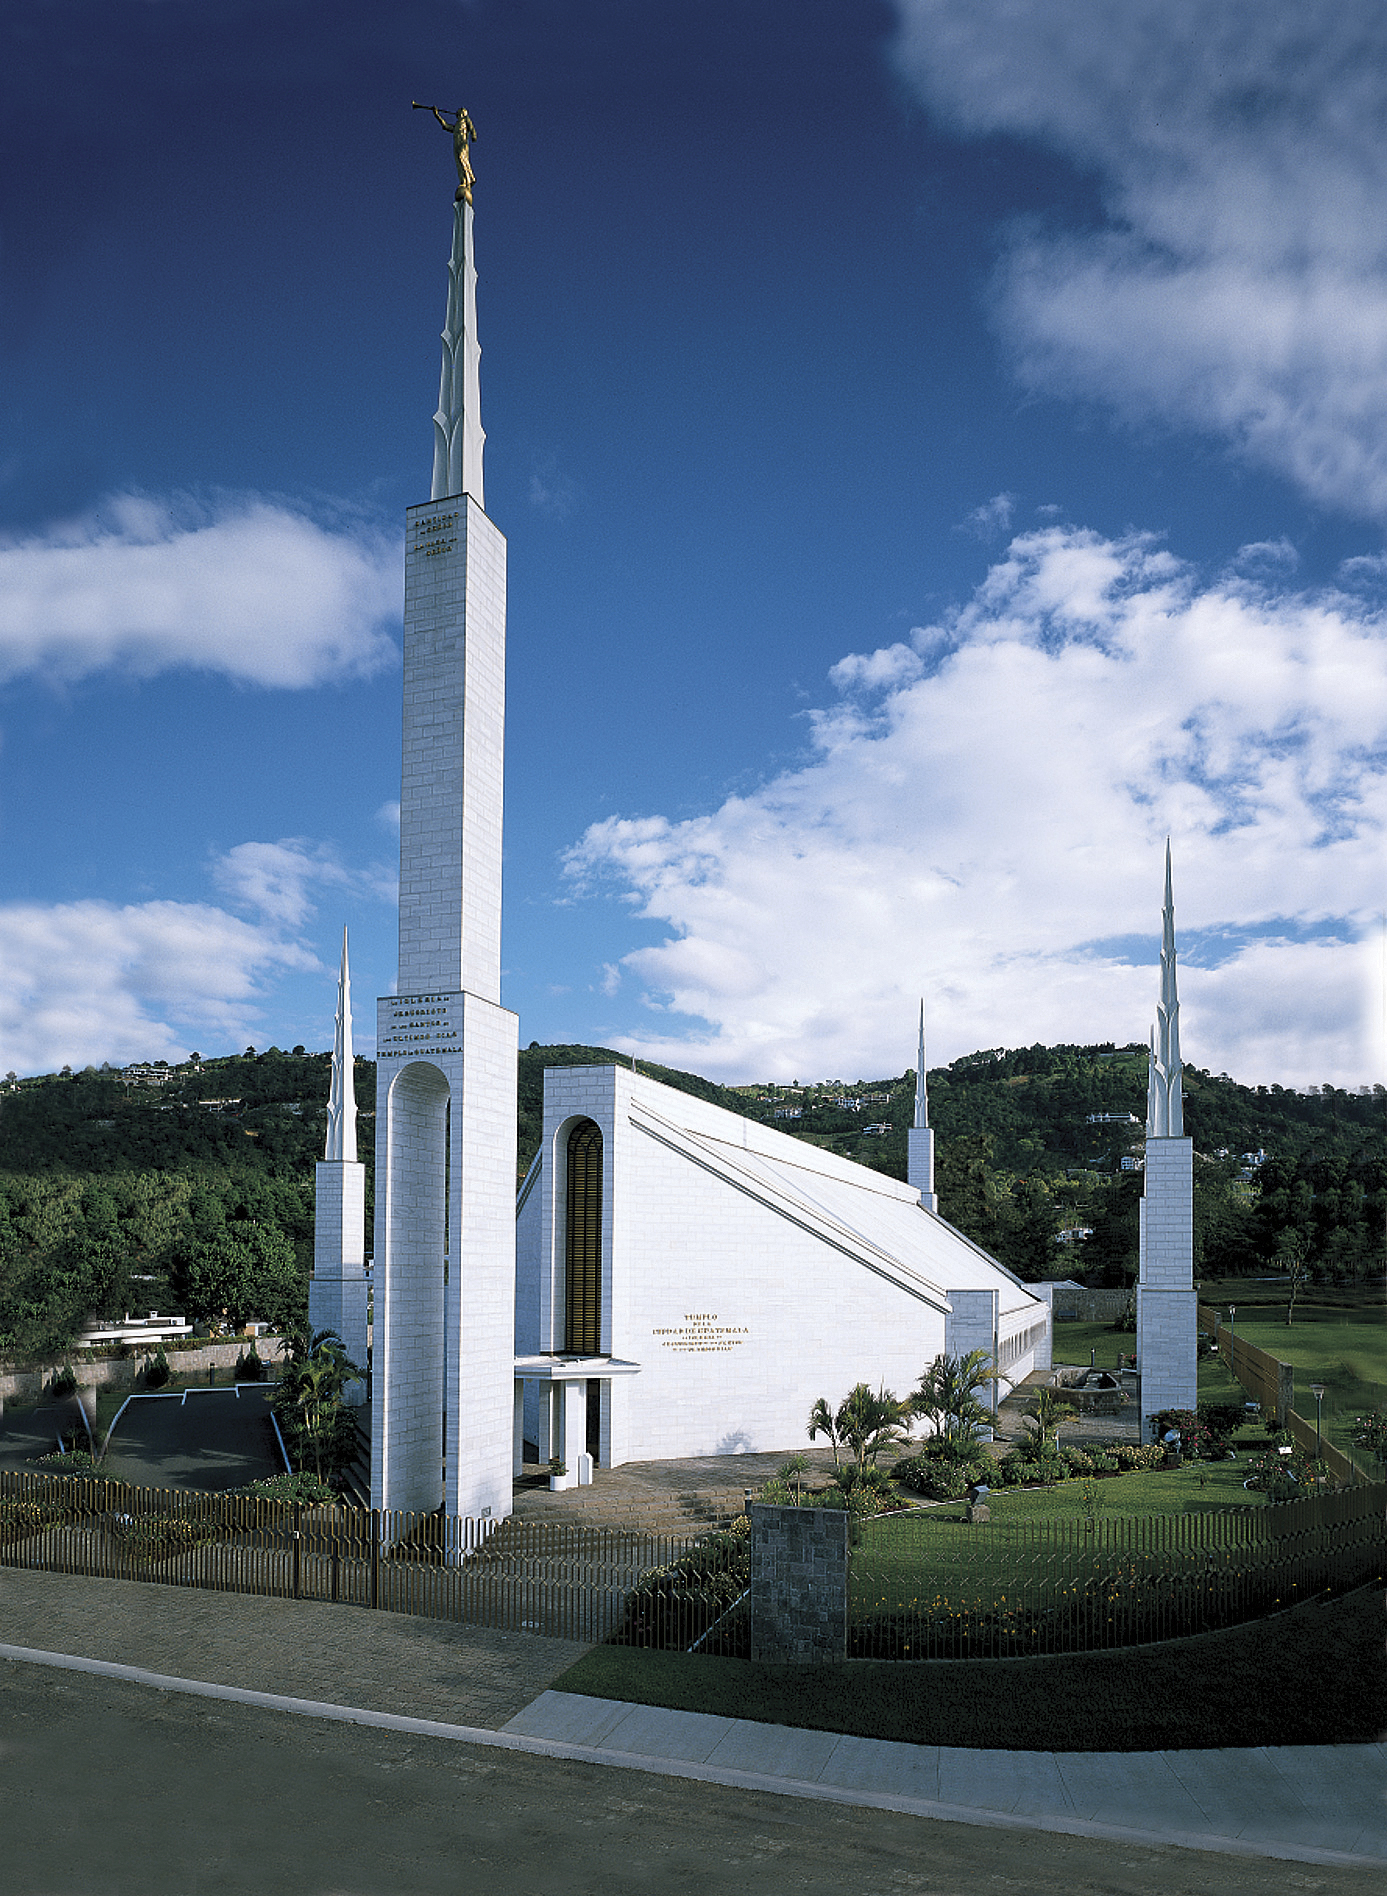 A view of the Guatemala City Guatemala Temple, including scenery.